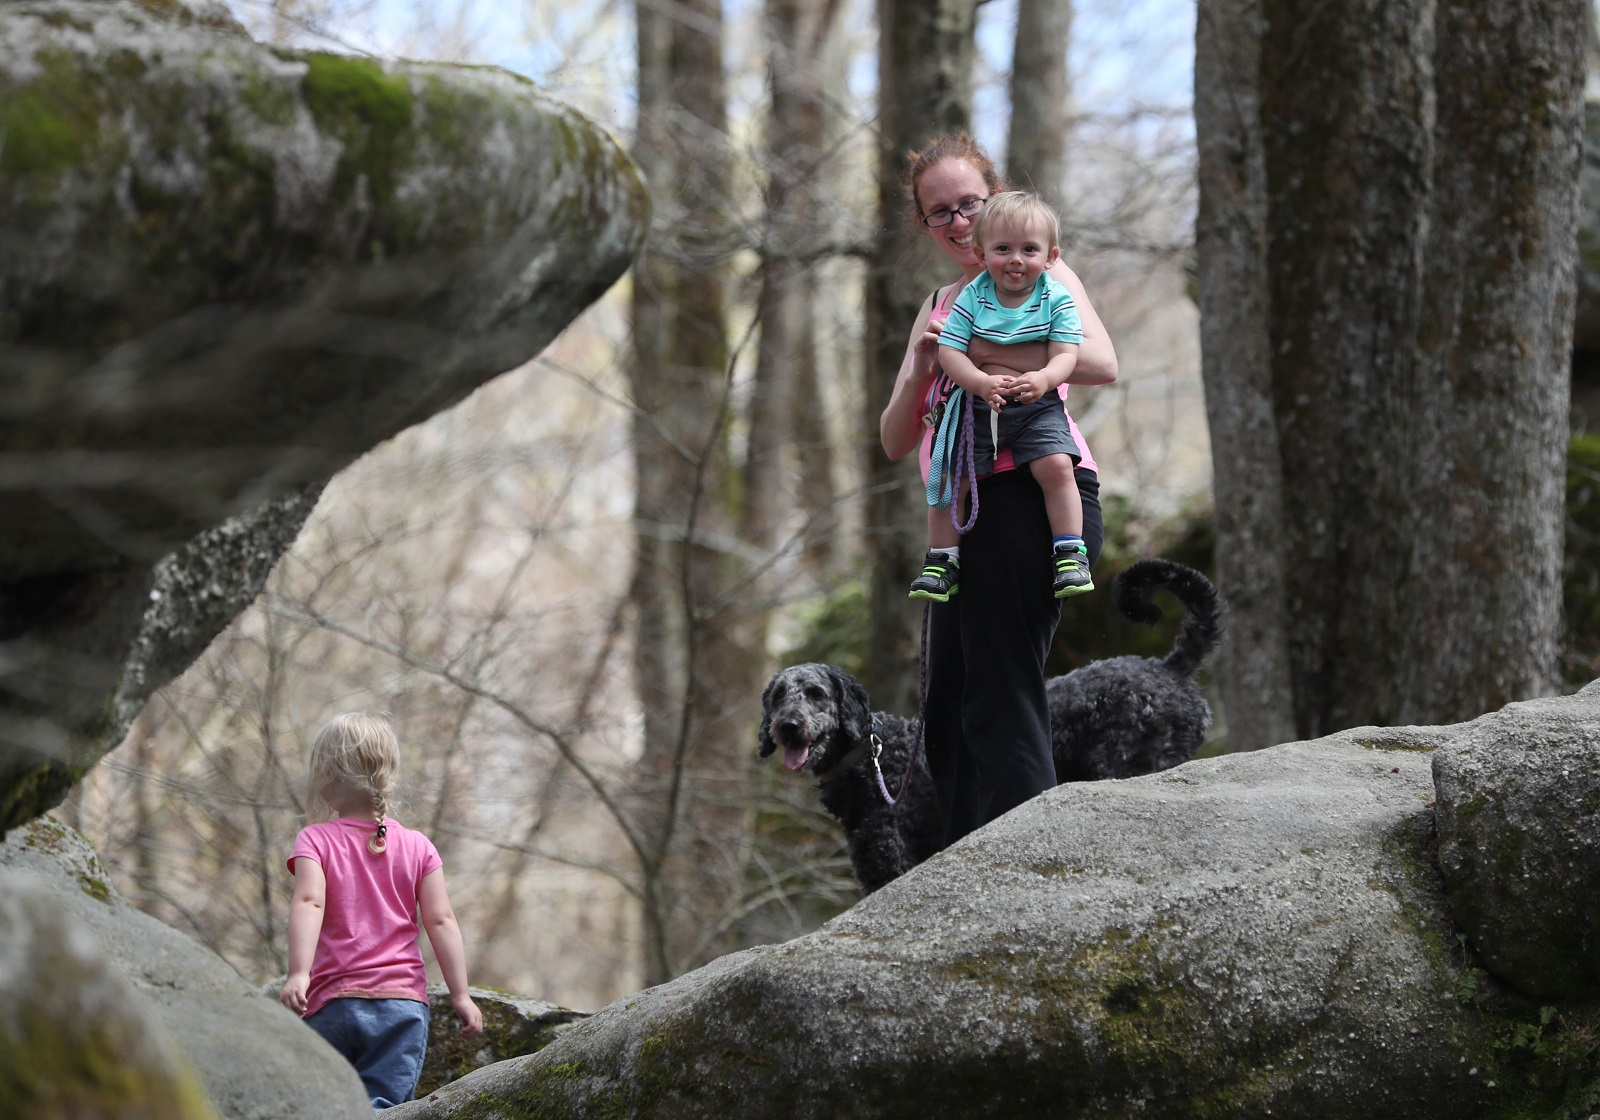 Nancy Beeler, of Jamestown, brings her daughter Jaden, 3, son Matthew, 1, and golden doodle Lily to Allegany State Park. (Sharon Cantillon/Buffalo News)